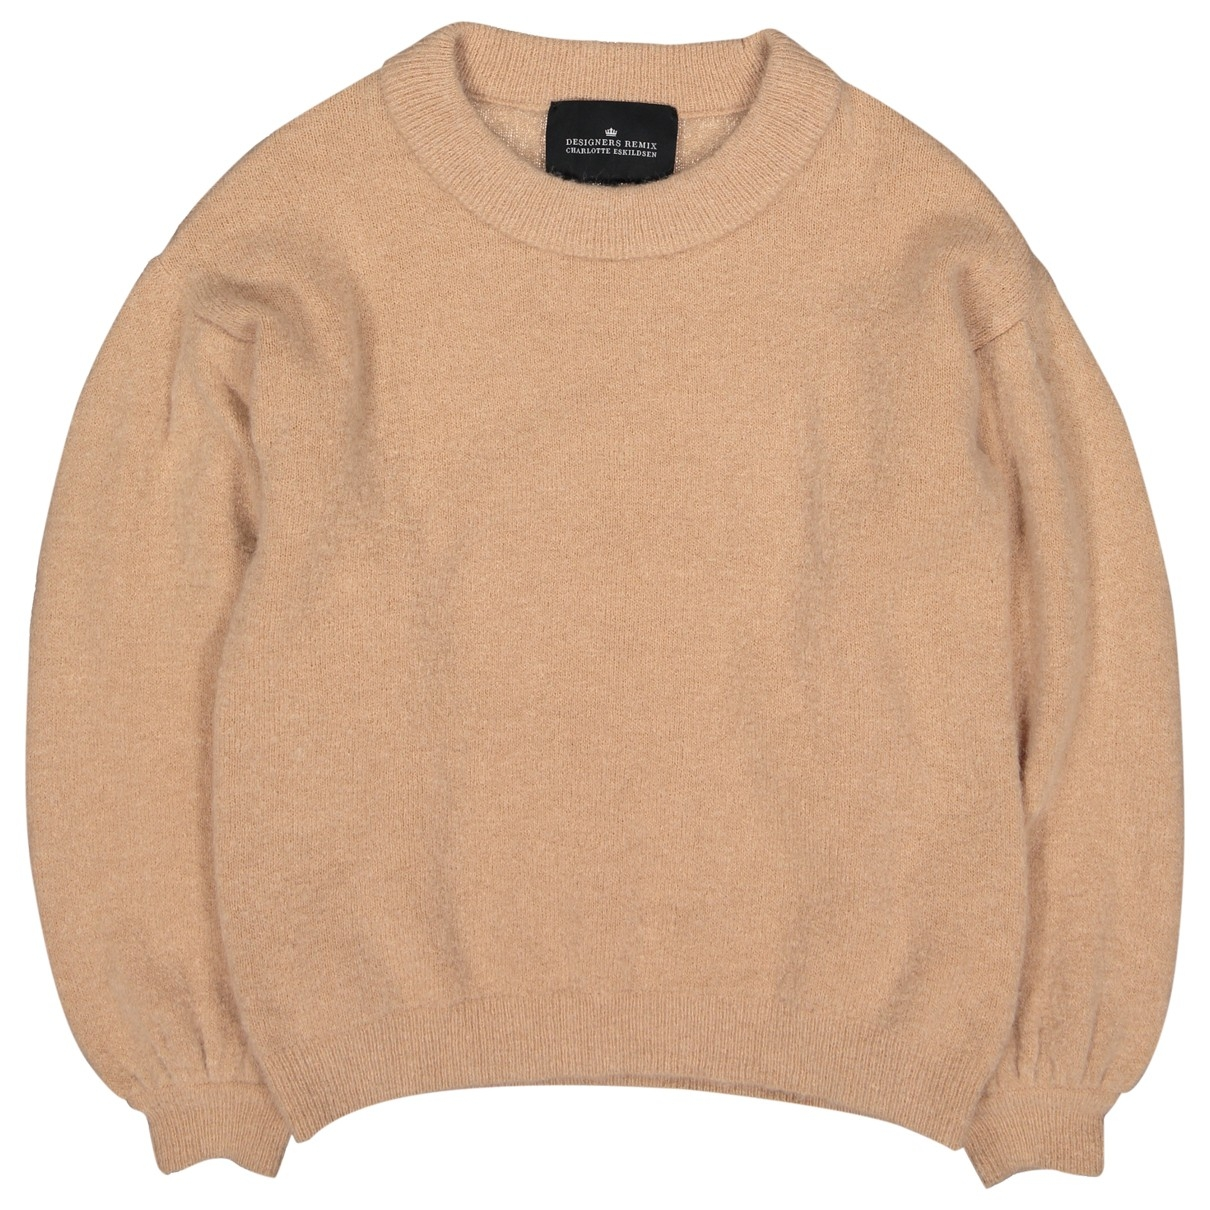 Designers Remix \N Pullover in  Beige Wolle